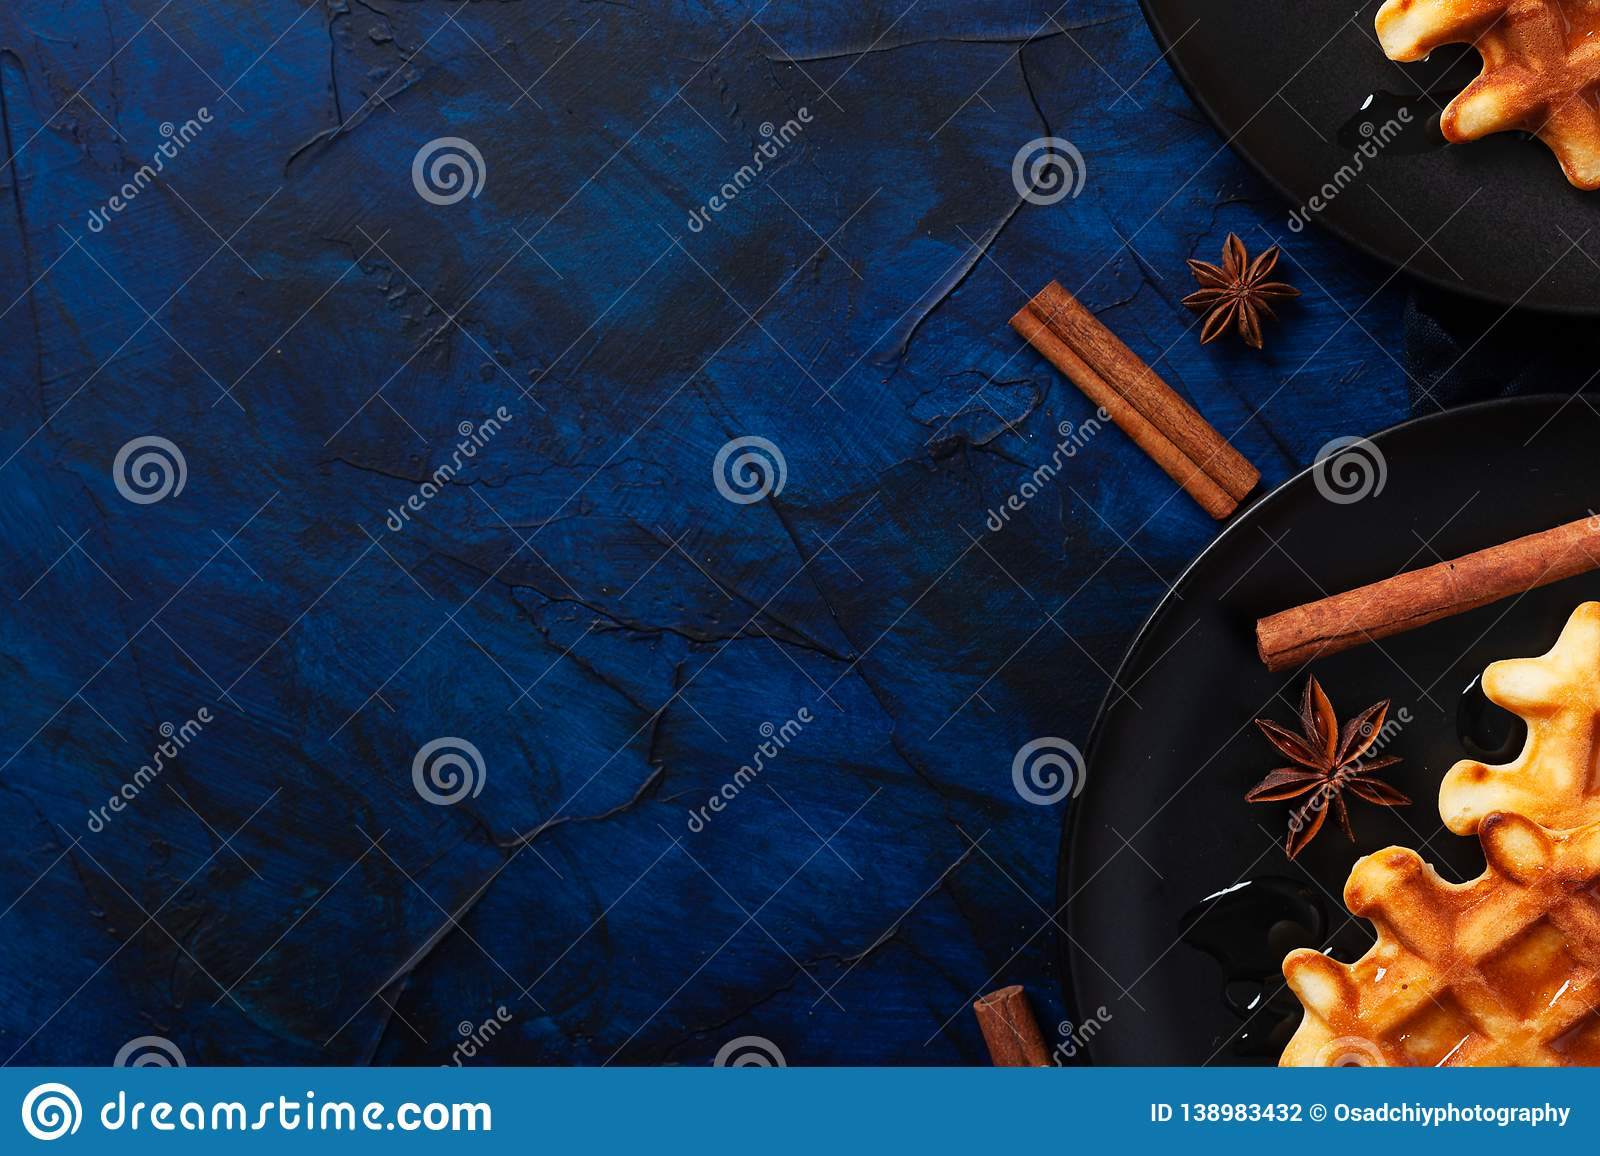 Belgian waffles with cinnamon and anise on dark blue textured background